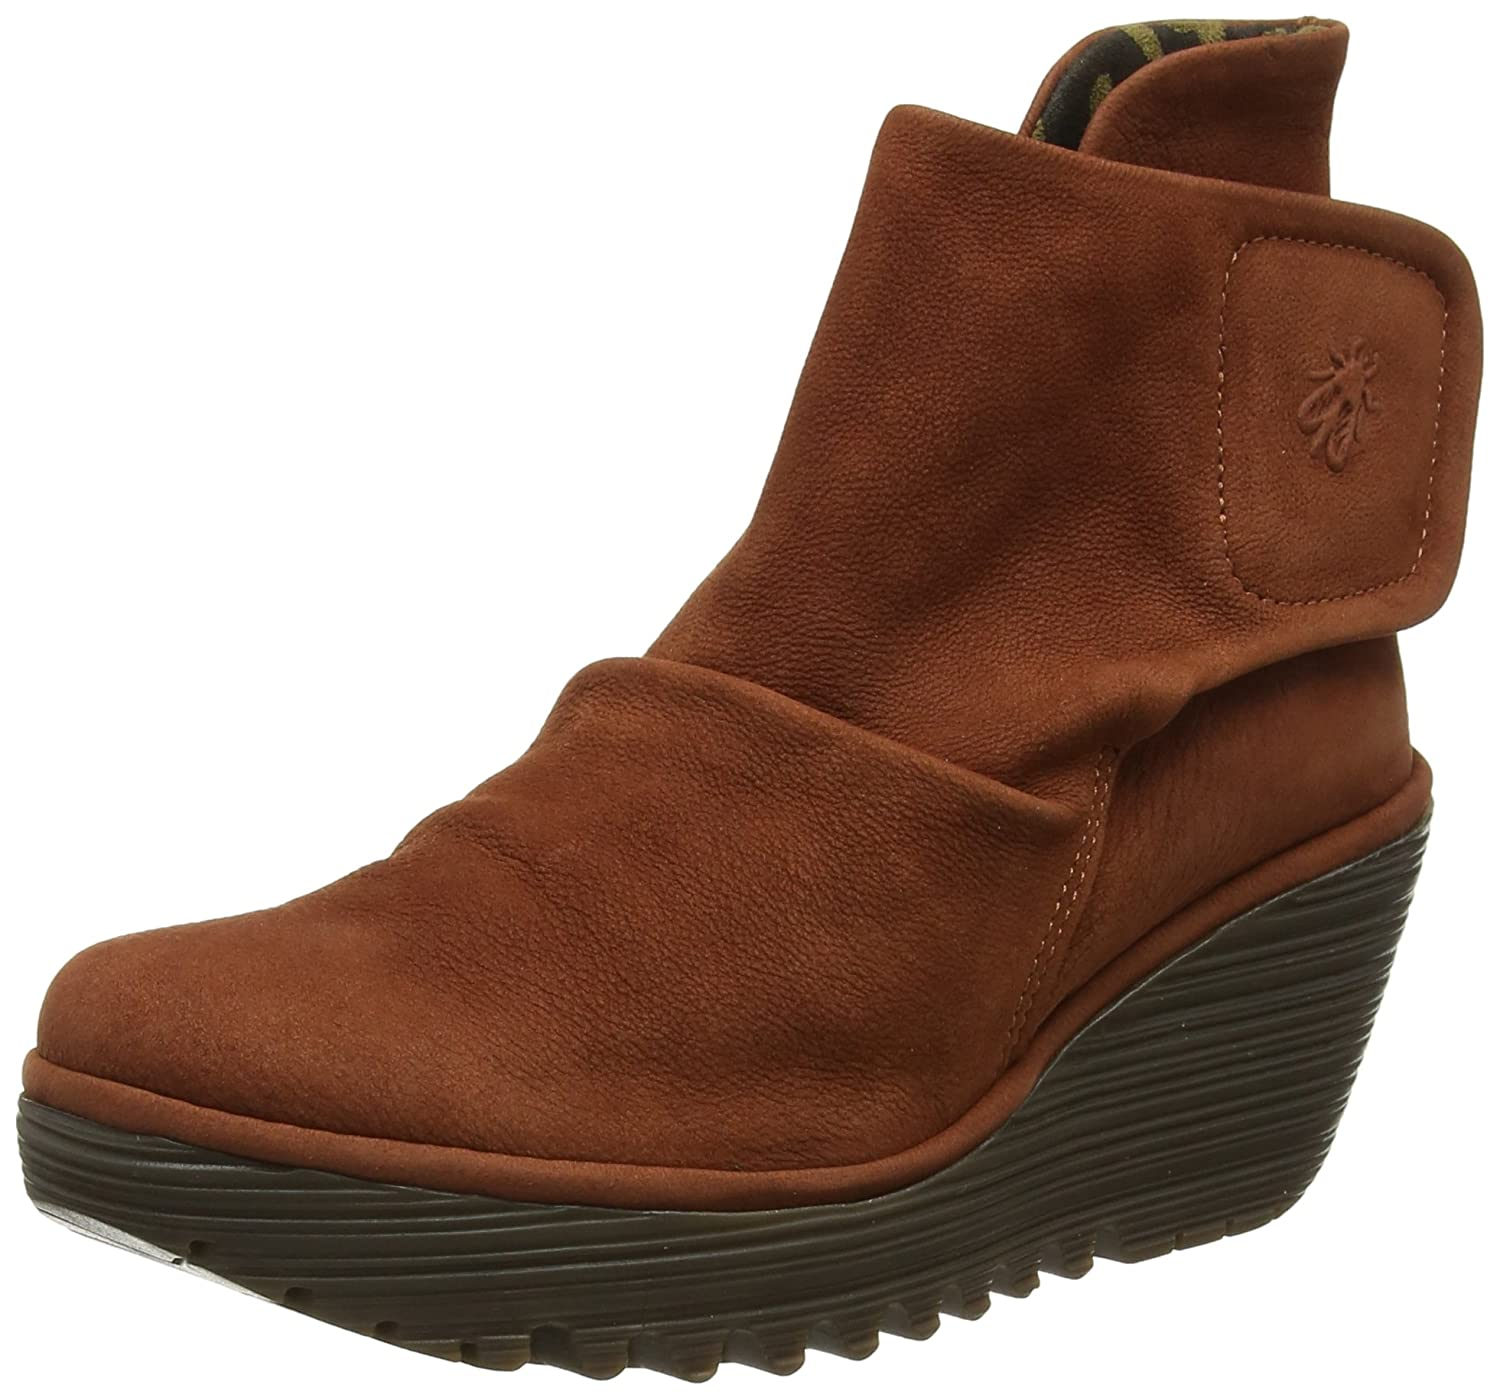 Fly London Yomi765fly, Botas para Mujer36 EU|Marrón (Brick)